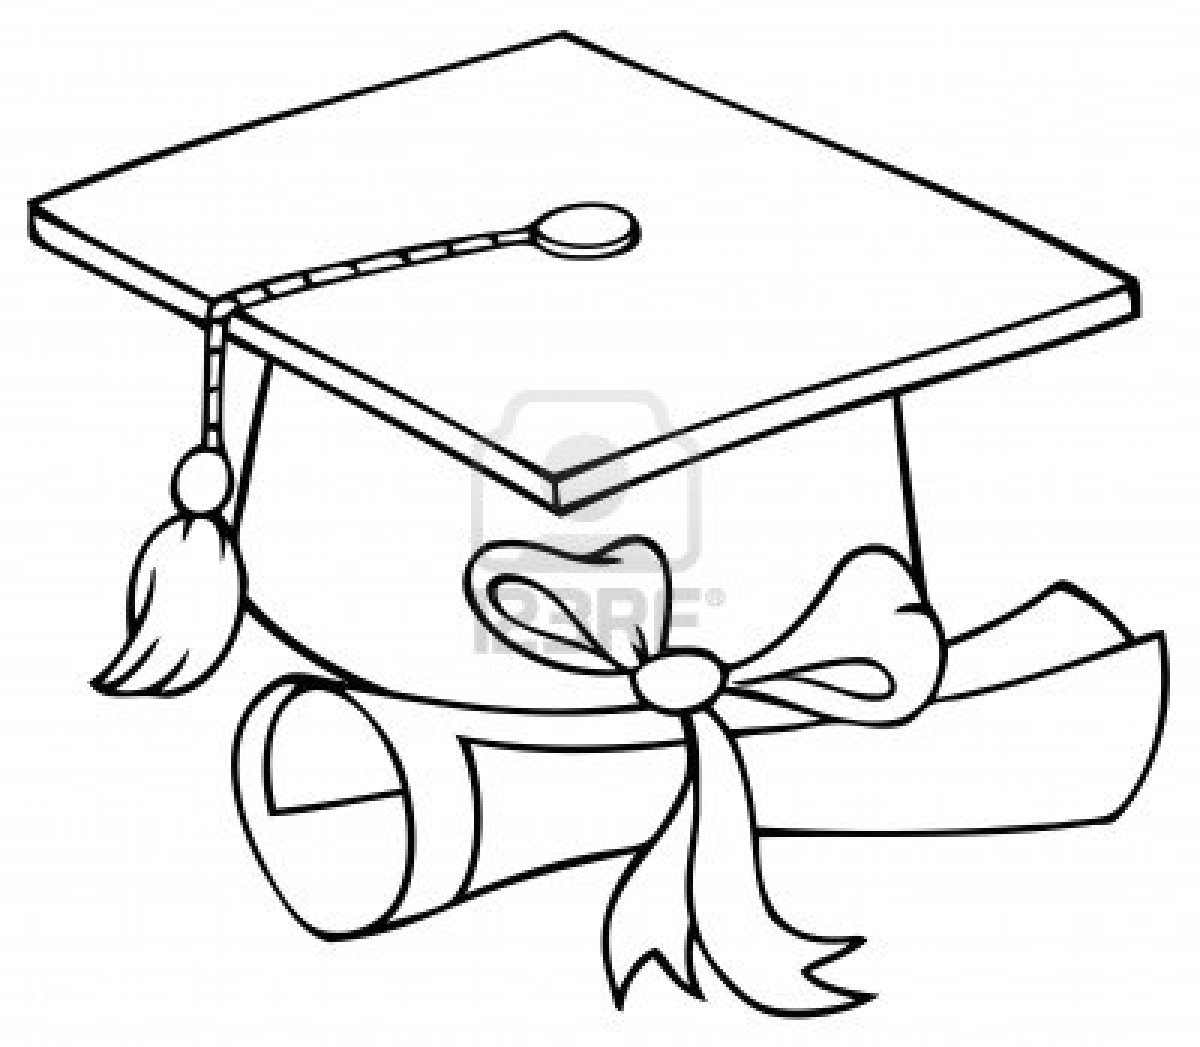 1200x1047 Love Graduation Coloring Pages To Print Advice College Page Free